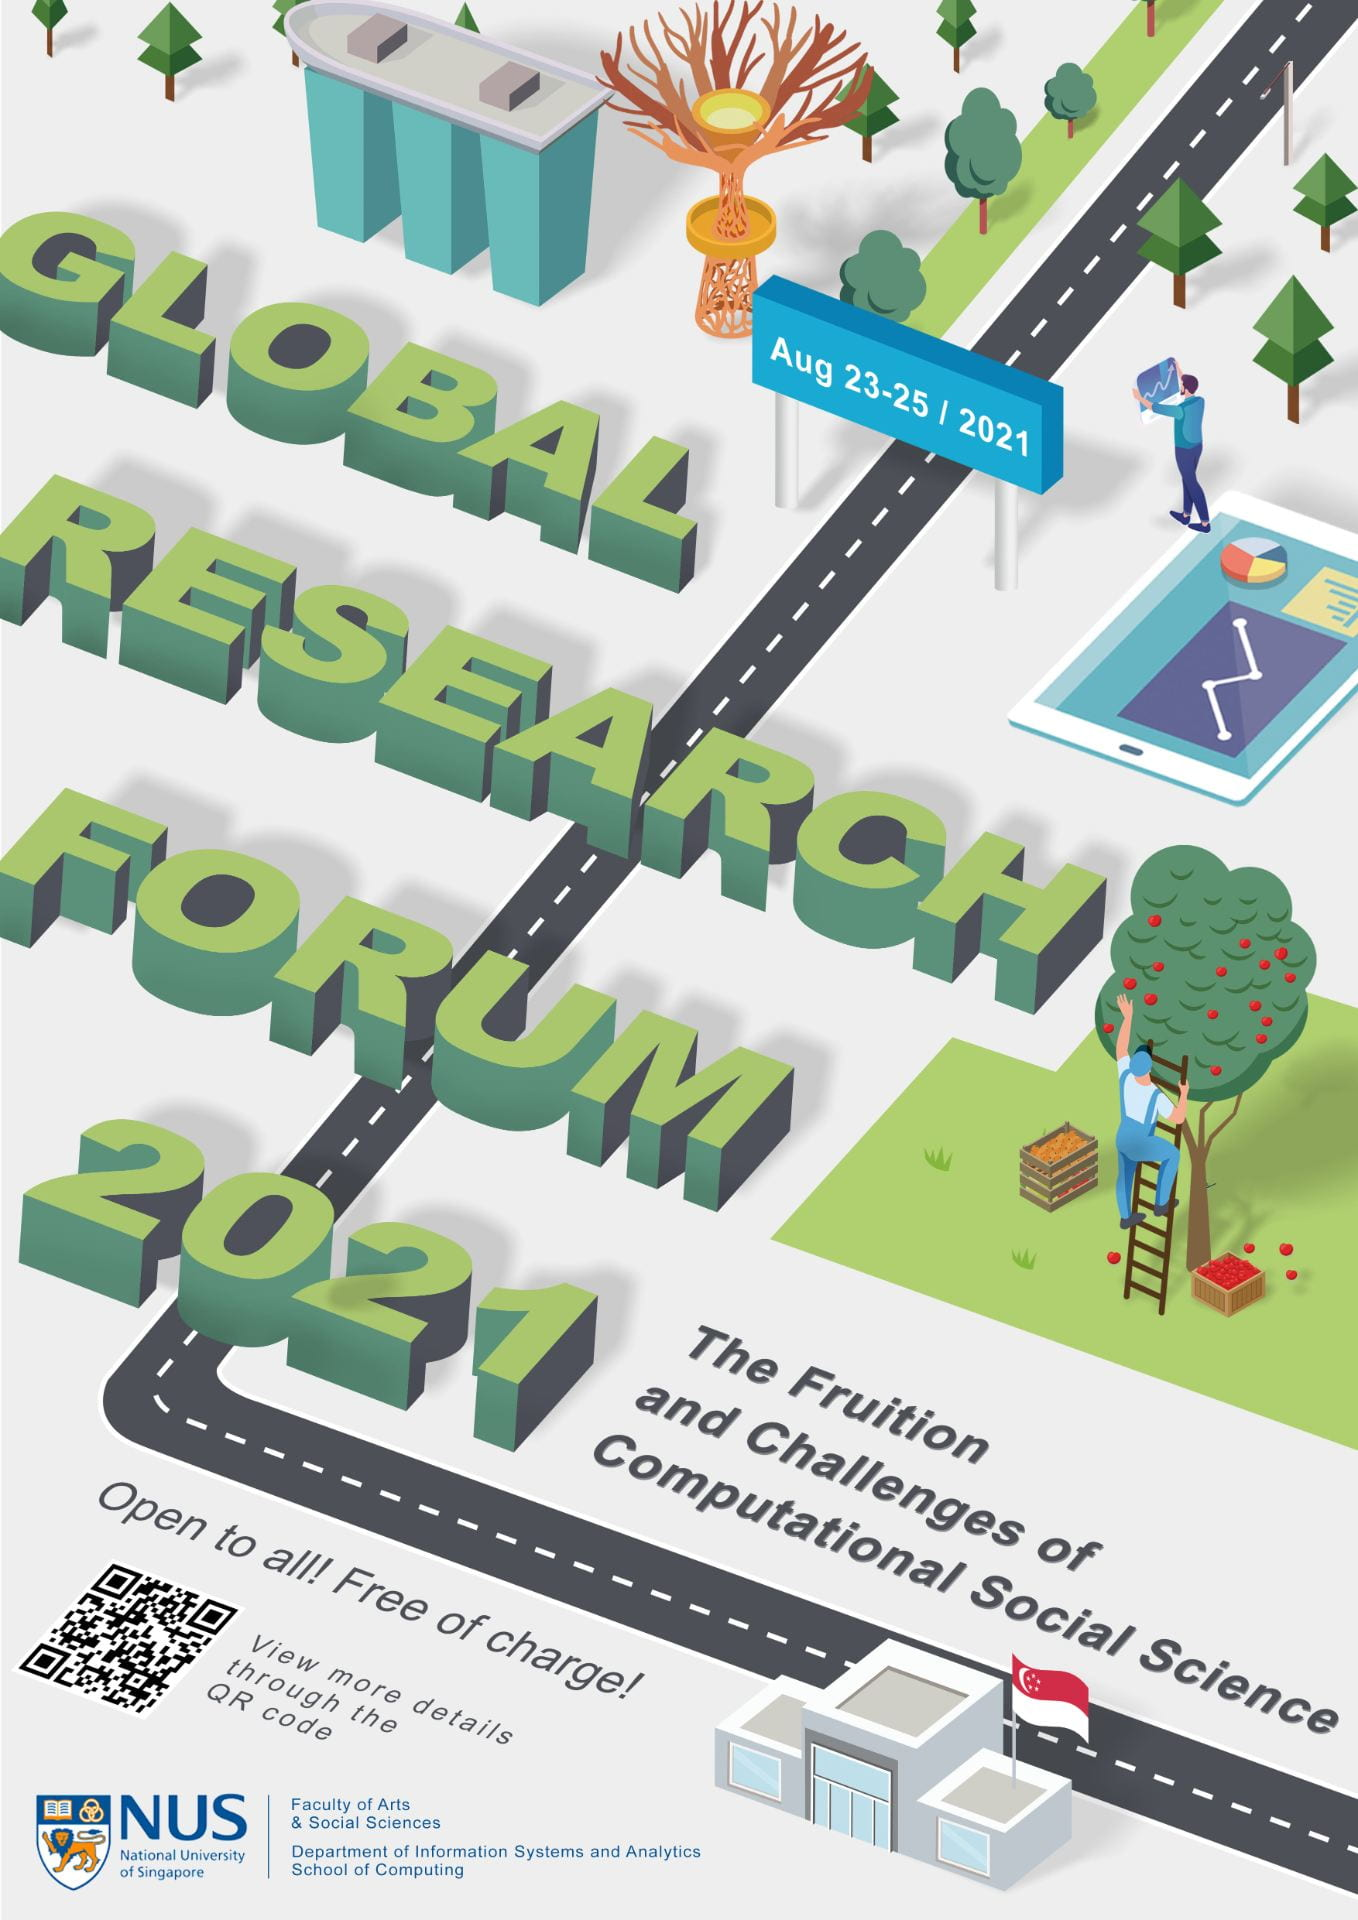 fass global research forum poster